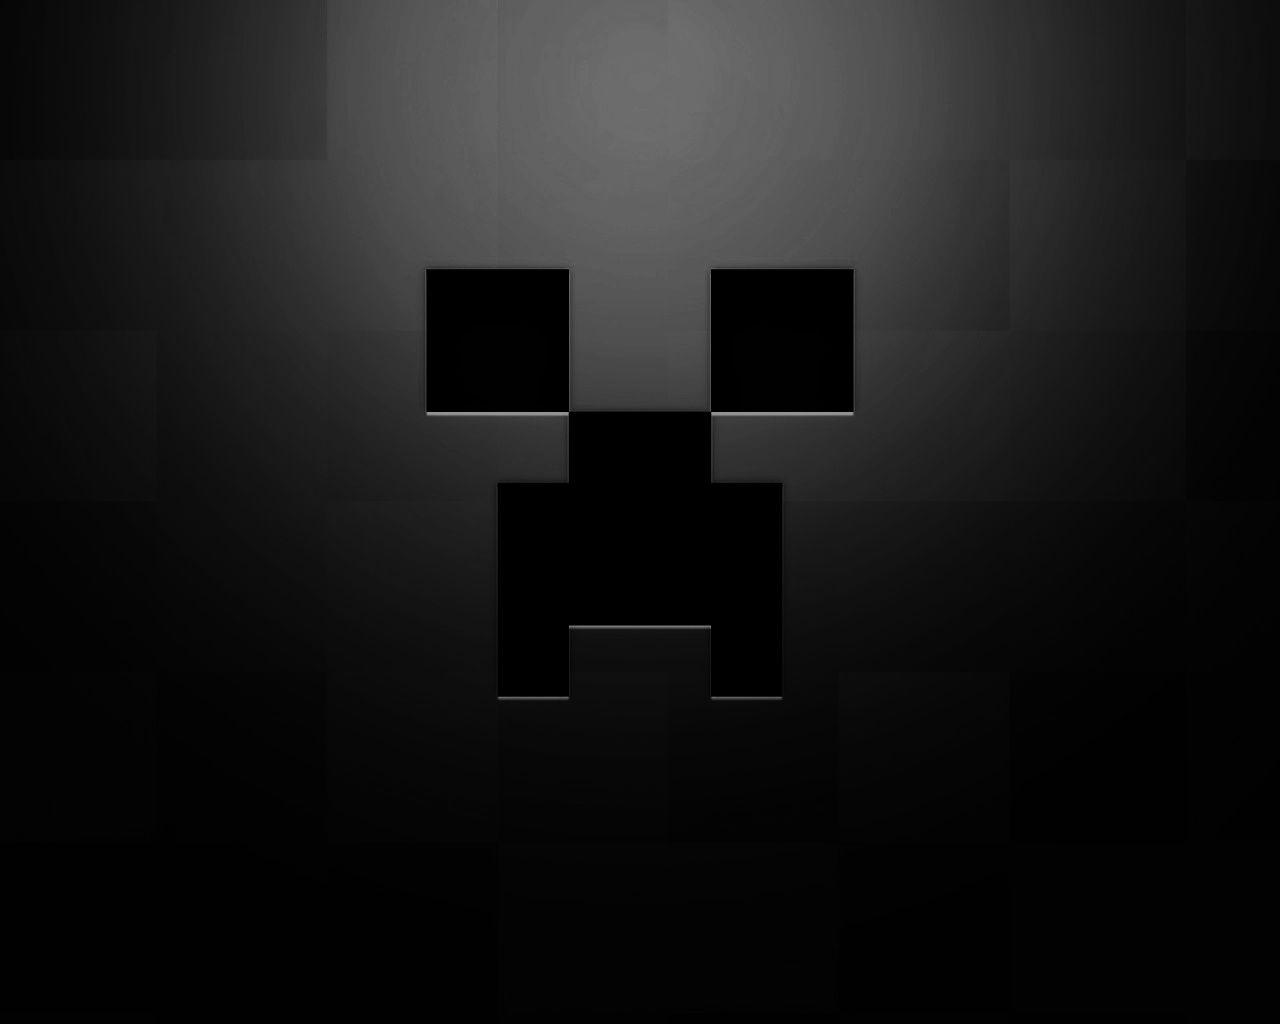 minecraft pitchers logo minecraft pe png 10 free cliparts download images minecraft pitchers